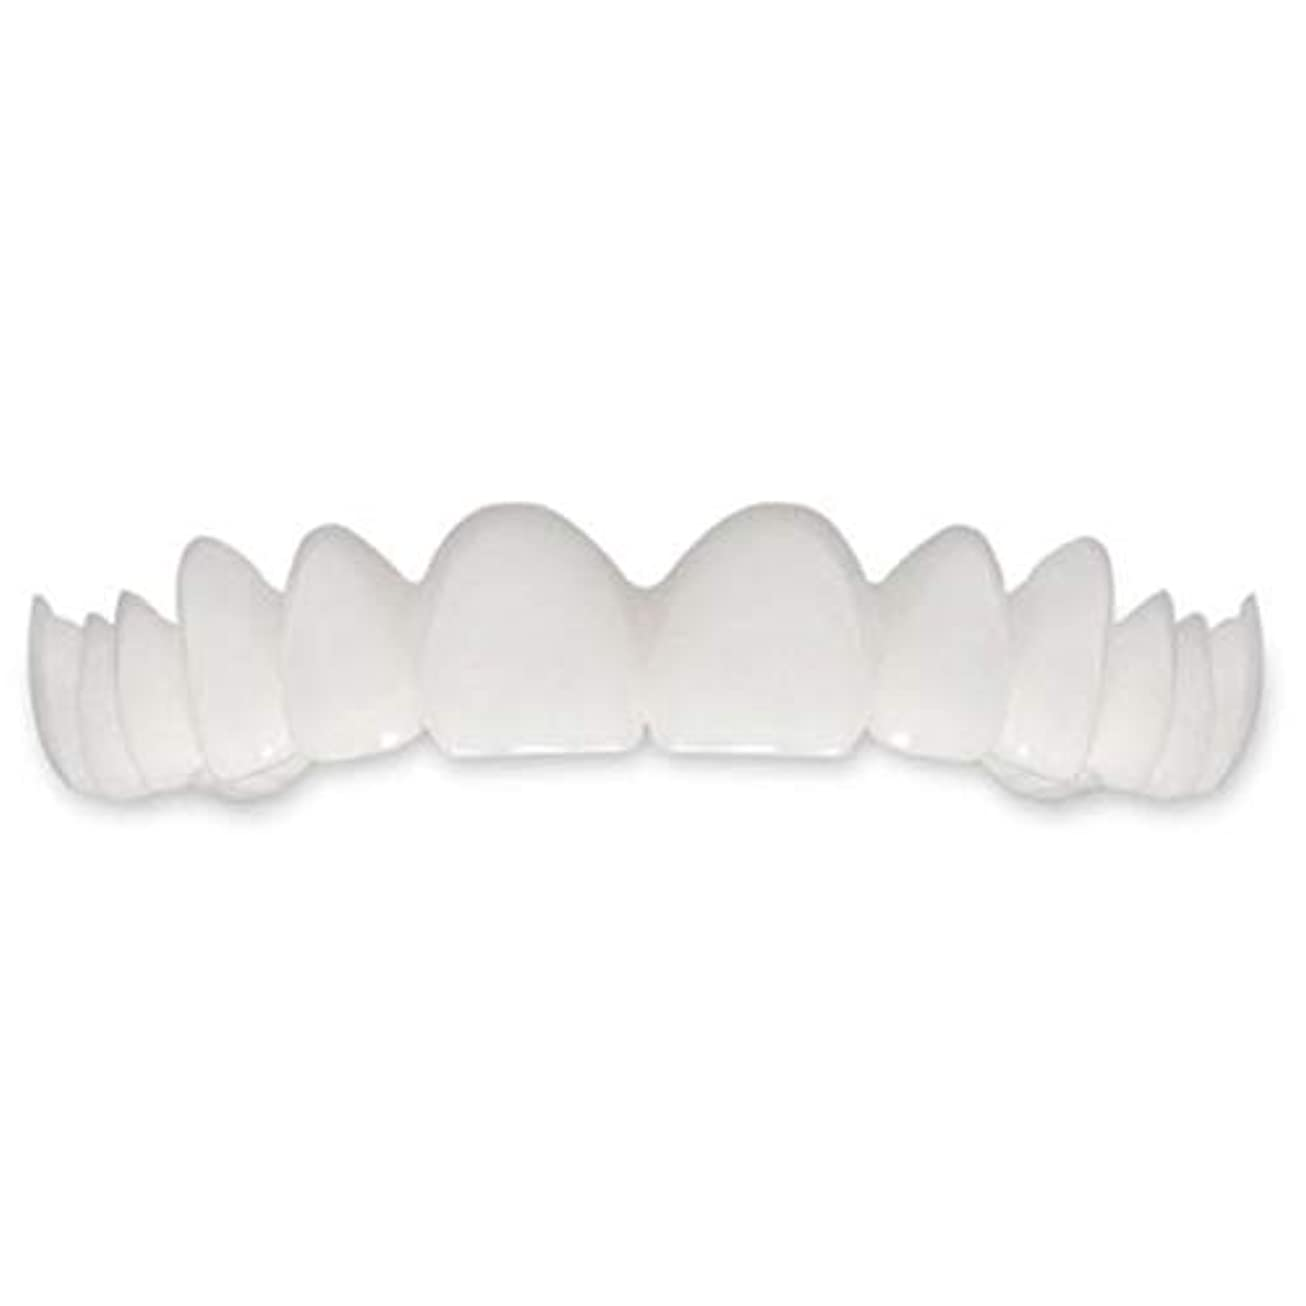 別れる謝る環境に優しいTooth Instant Perfect Smile Flex Teeth Whitening Smile False Teeth Cover-ホワイト